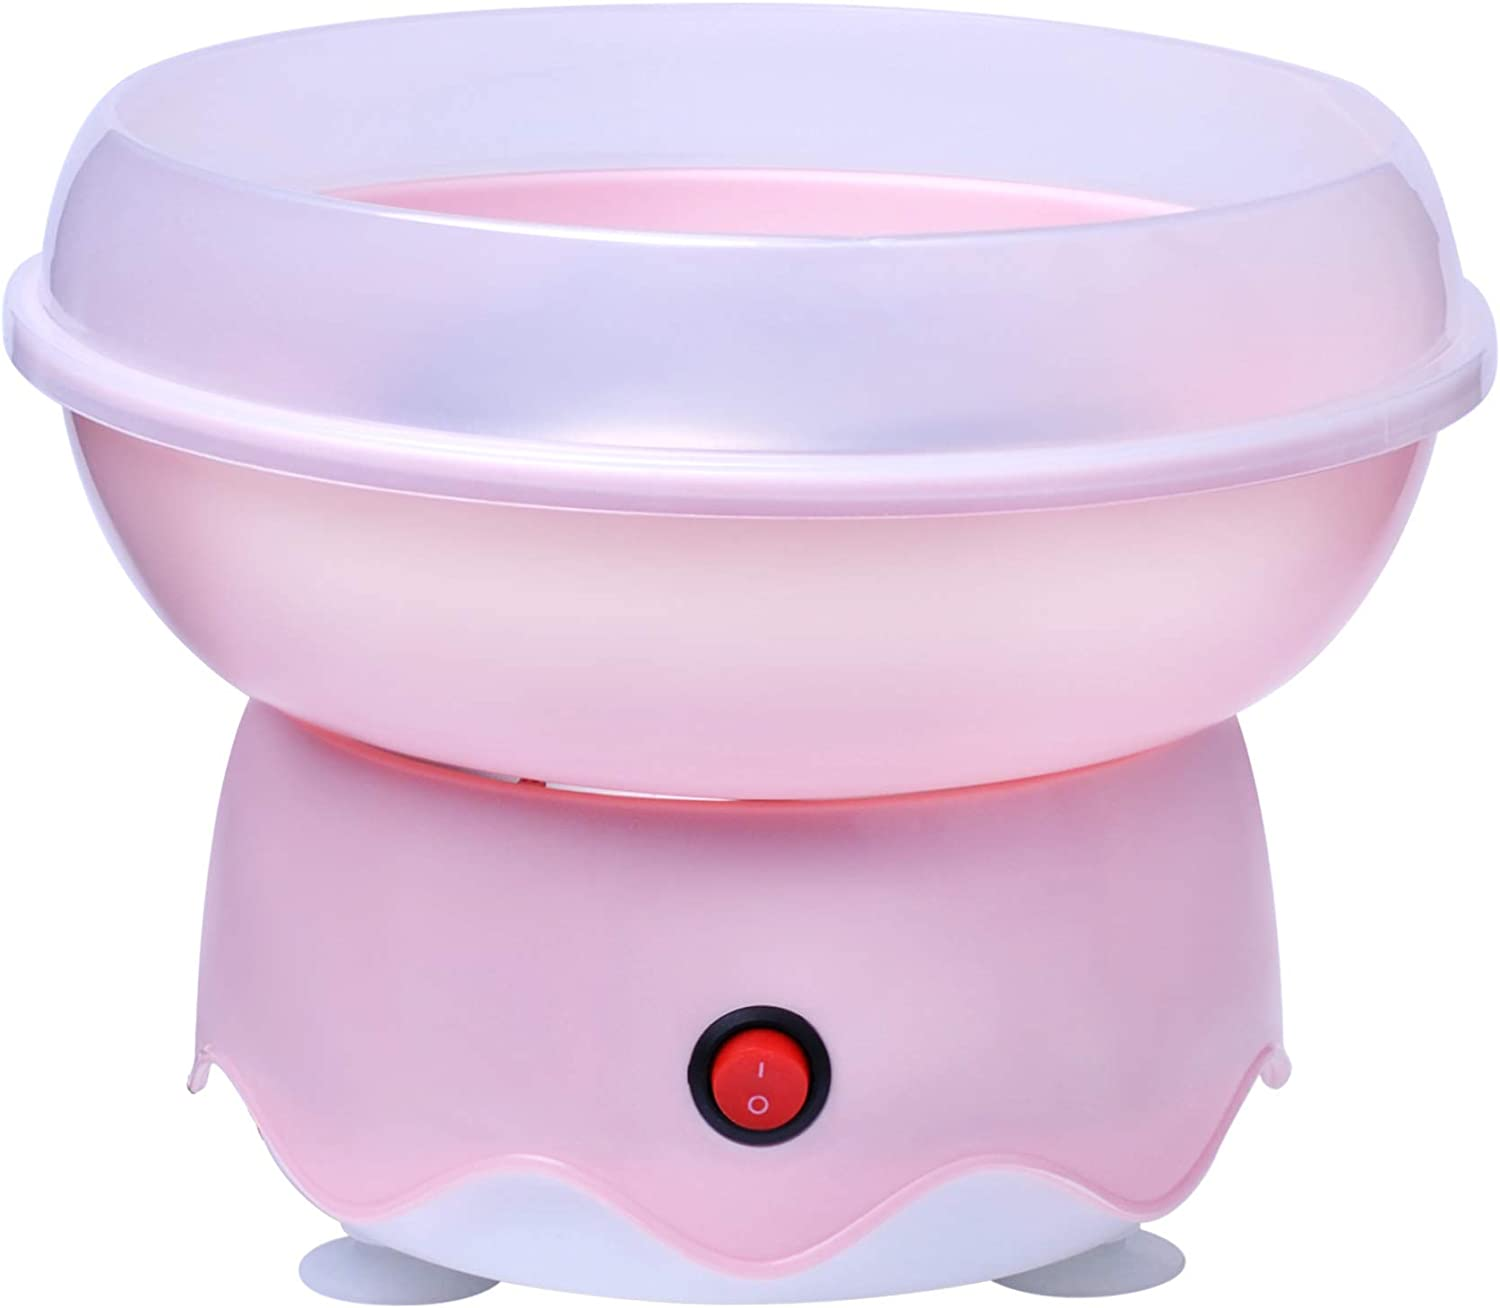 Challenge the lowest price of Japan ☆ Mini Cotton Candy Machine for Oklahoma City Mall Nostalgia Kids Maker